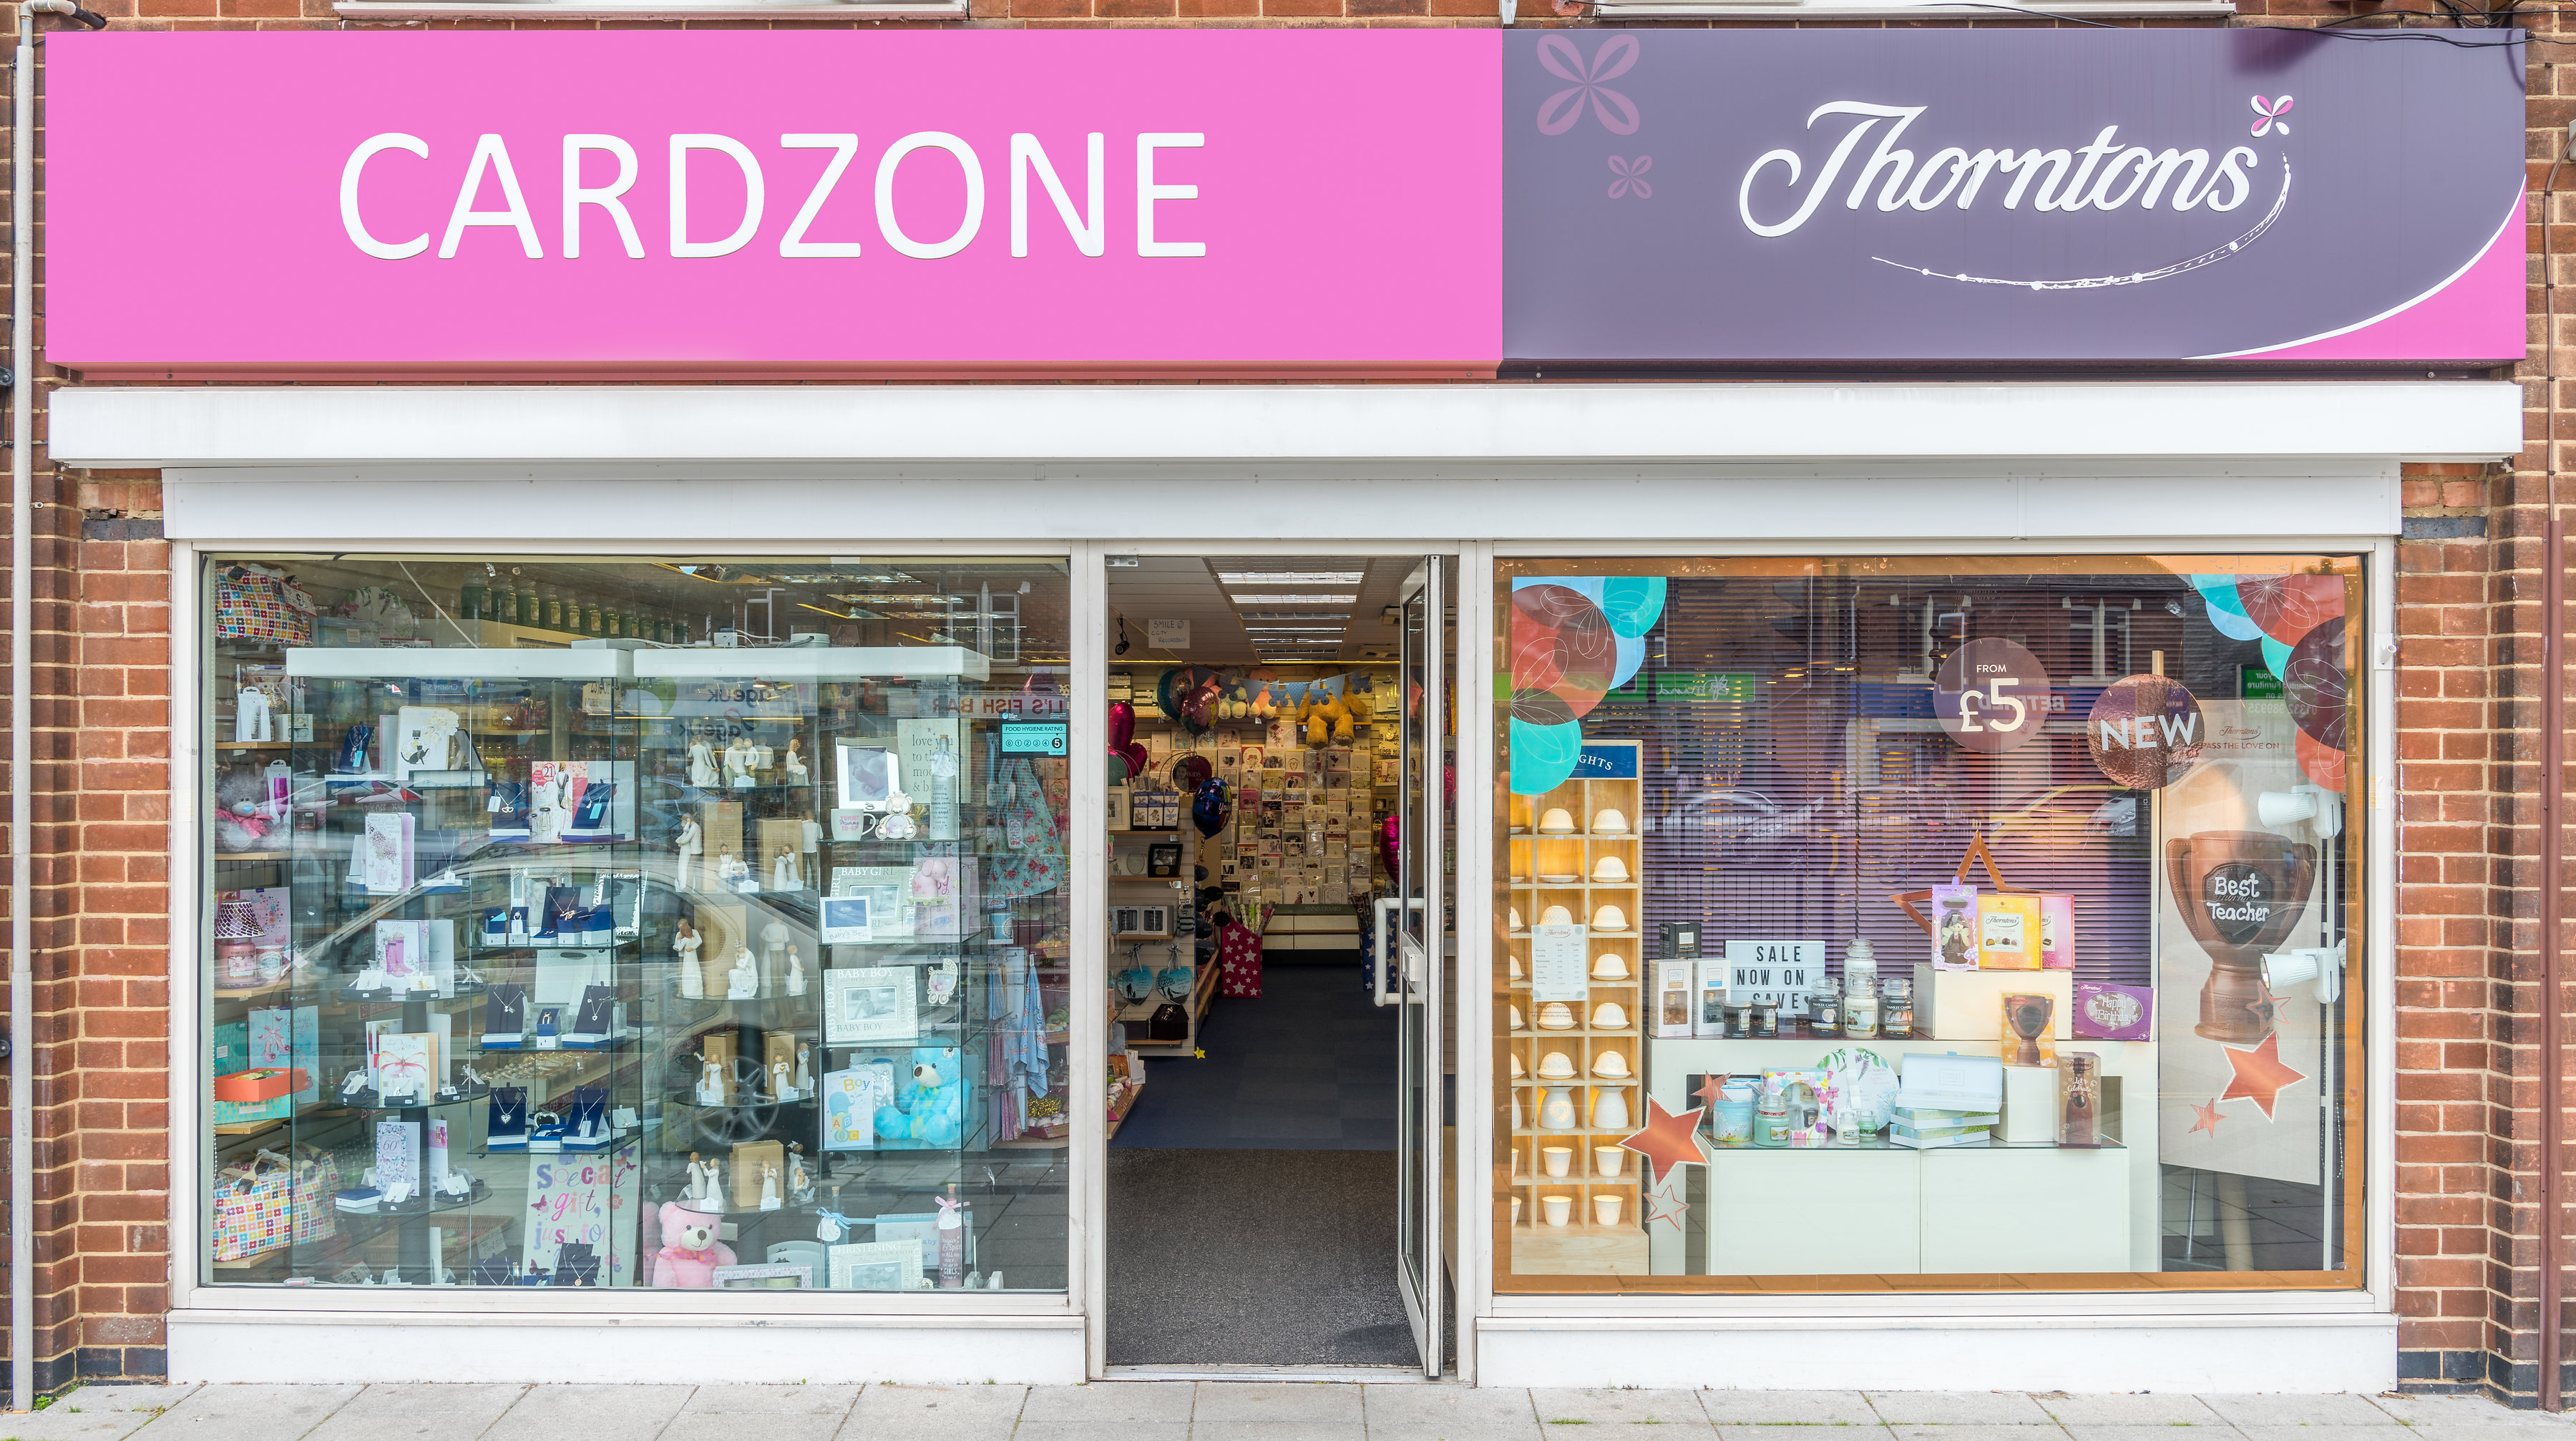 Above: Cardzone is Thorntons largest franchisee, with 36 stores.